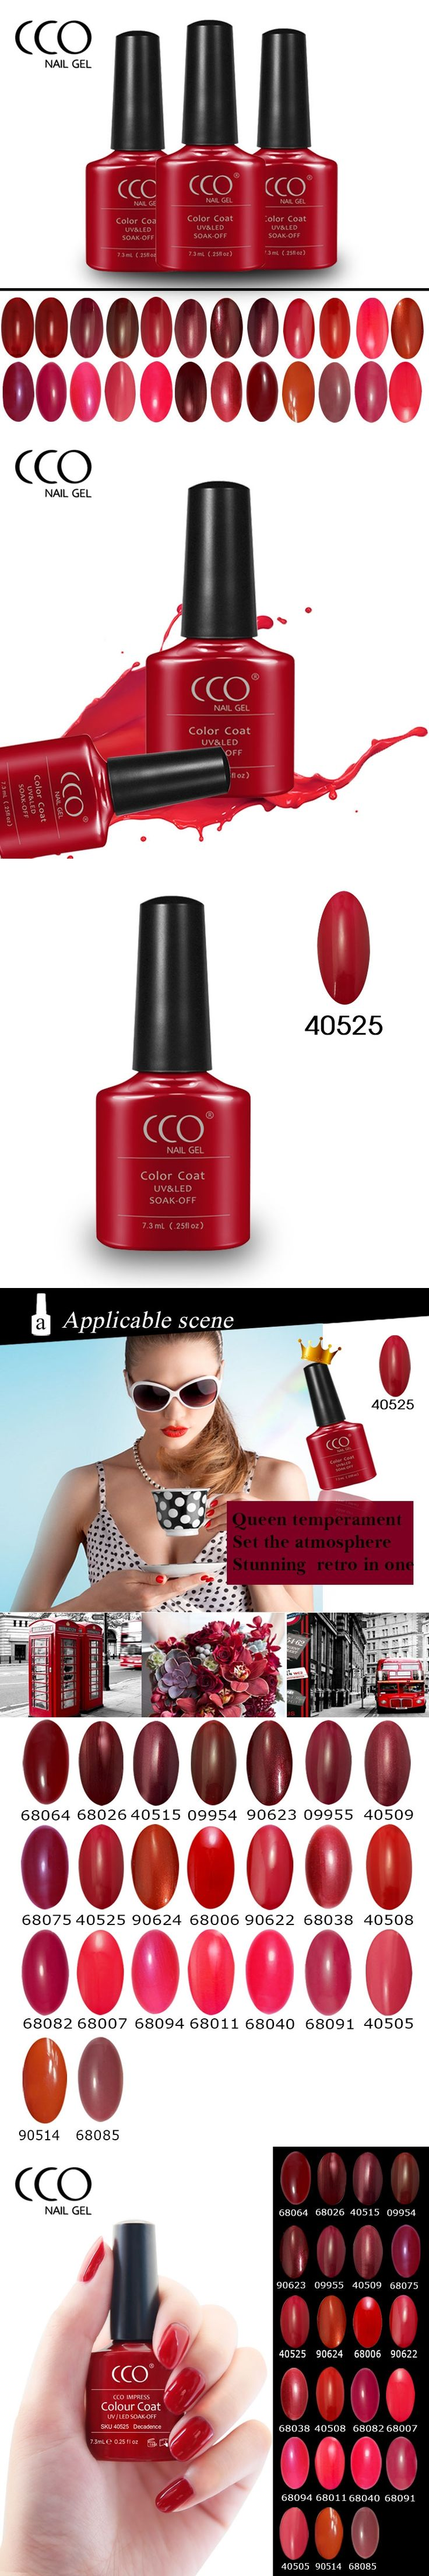 CCO IMPRESS Nail Gel Polish Red Color Series Gelpolish Solid Color Soak off LED UV Gel Nails Polish 23 Gorgeous Color Available